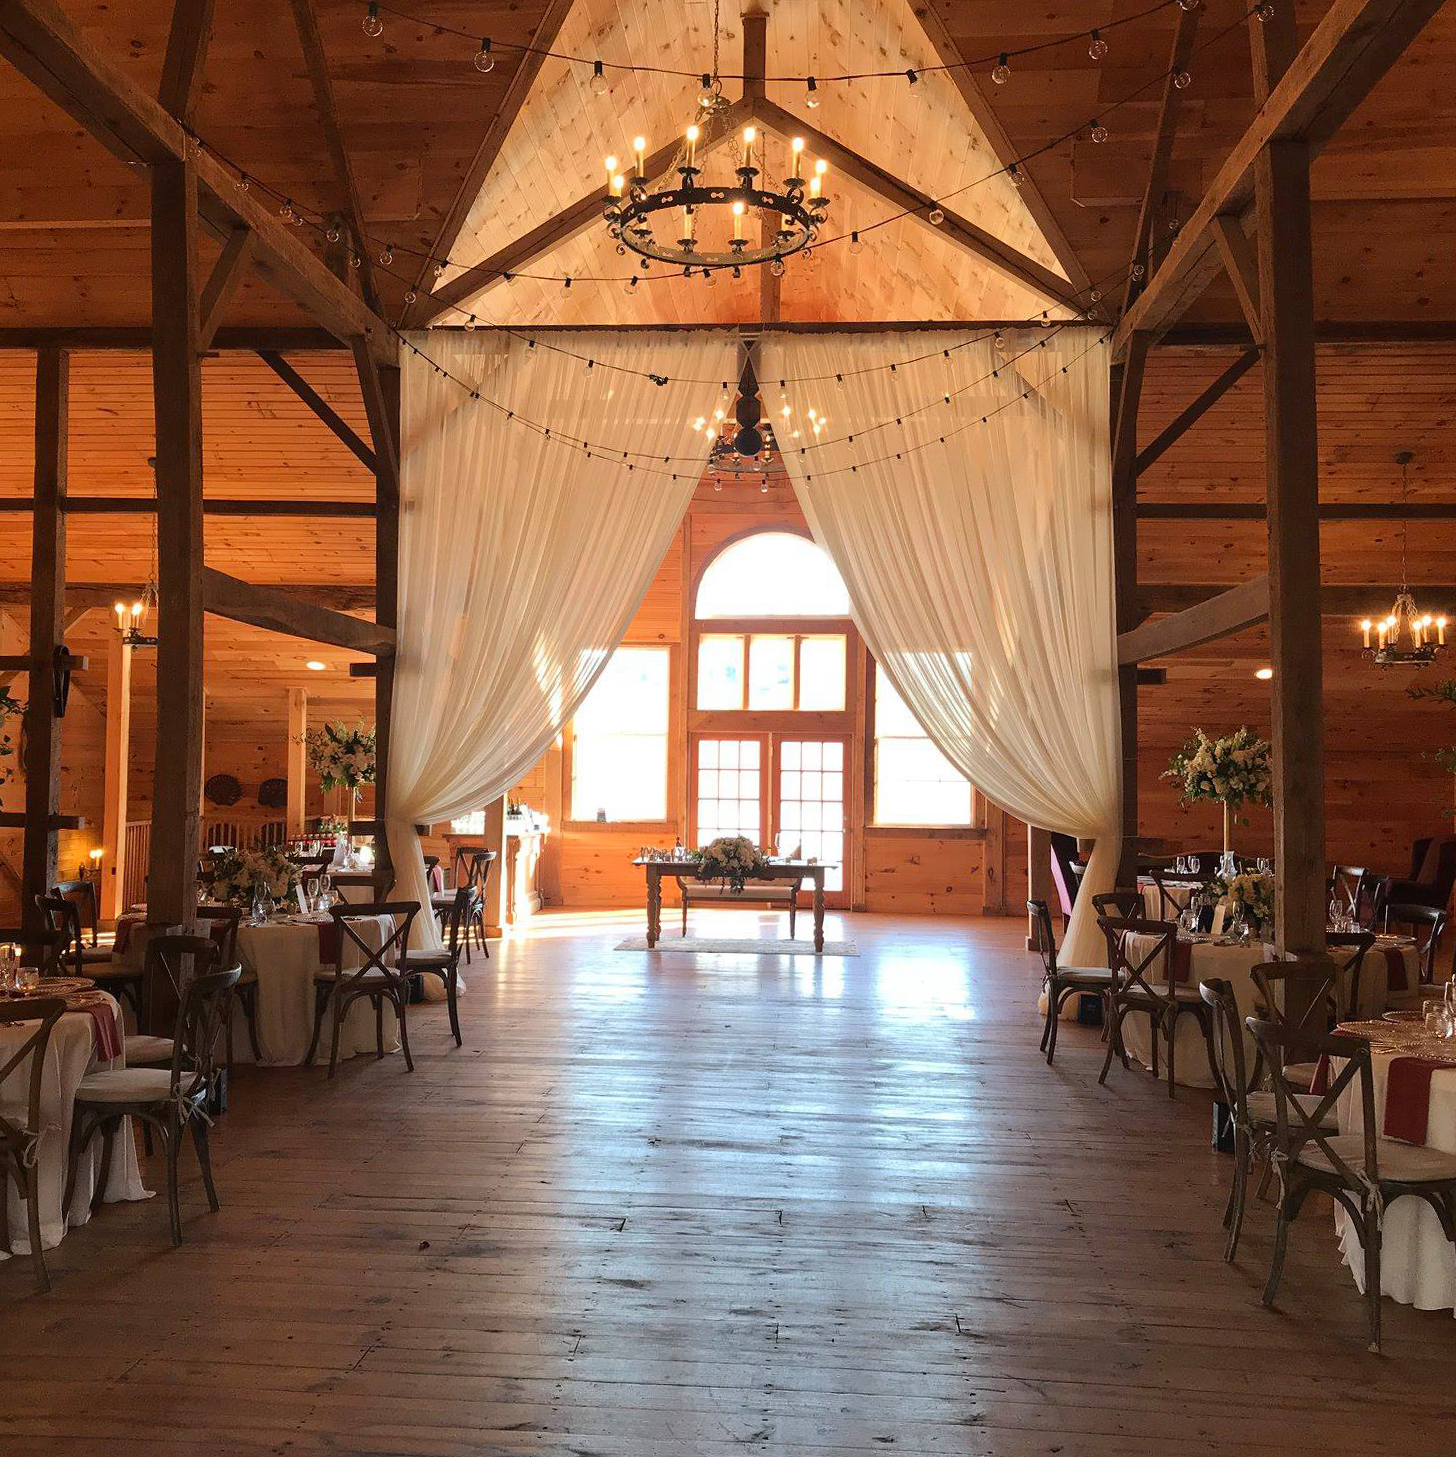 About Stone Ridge Hollow Barn Wedding Party and Event